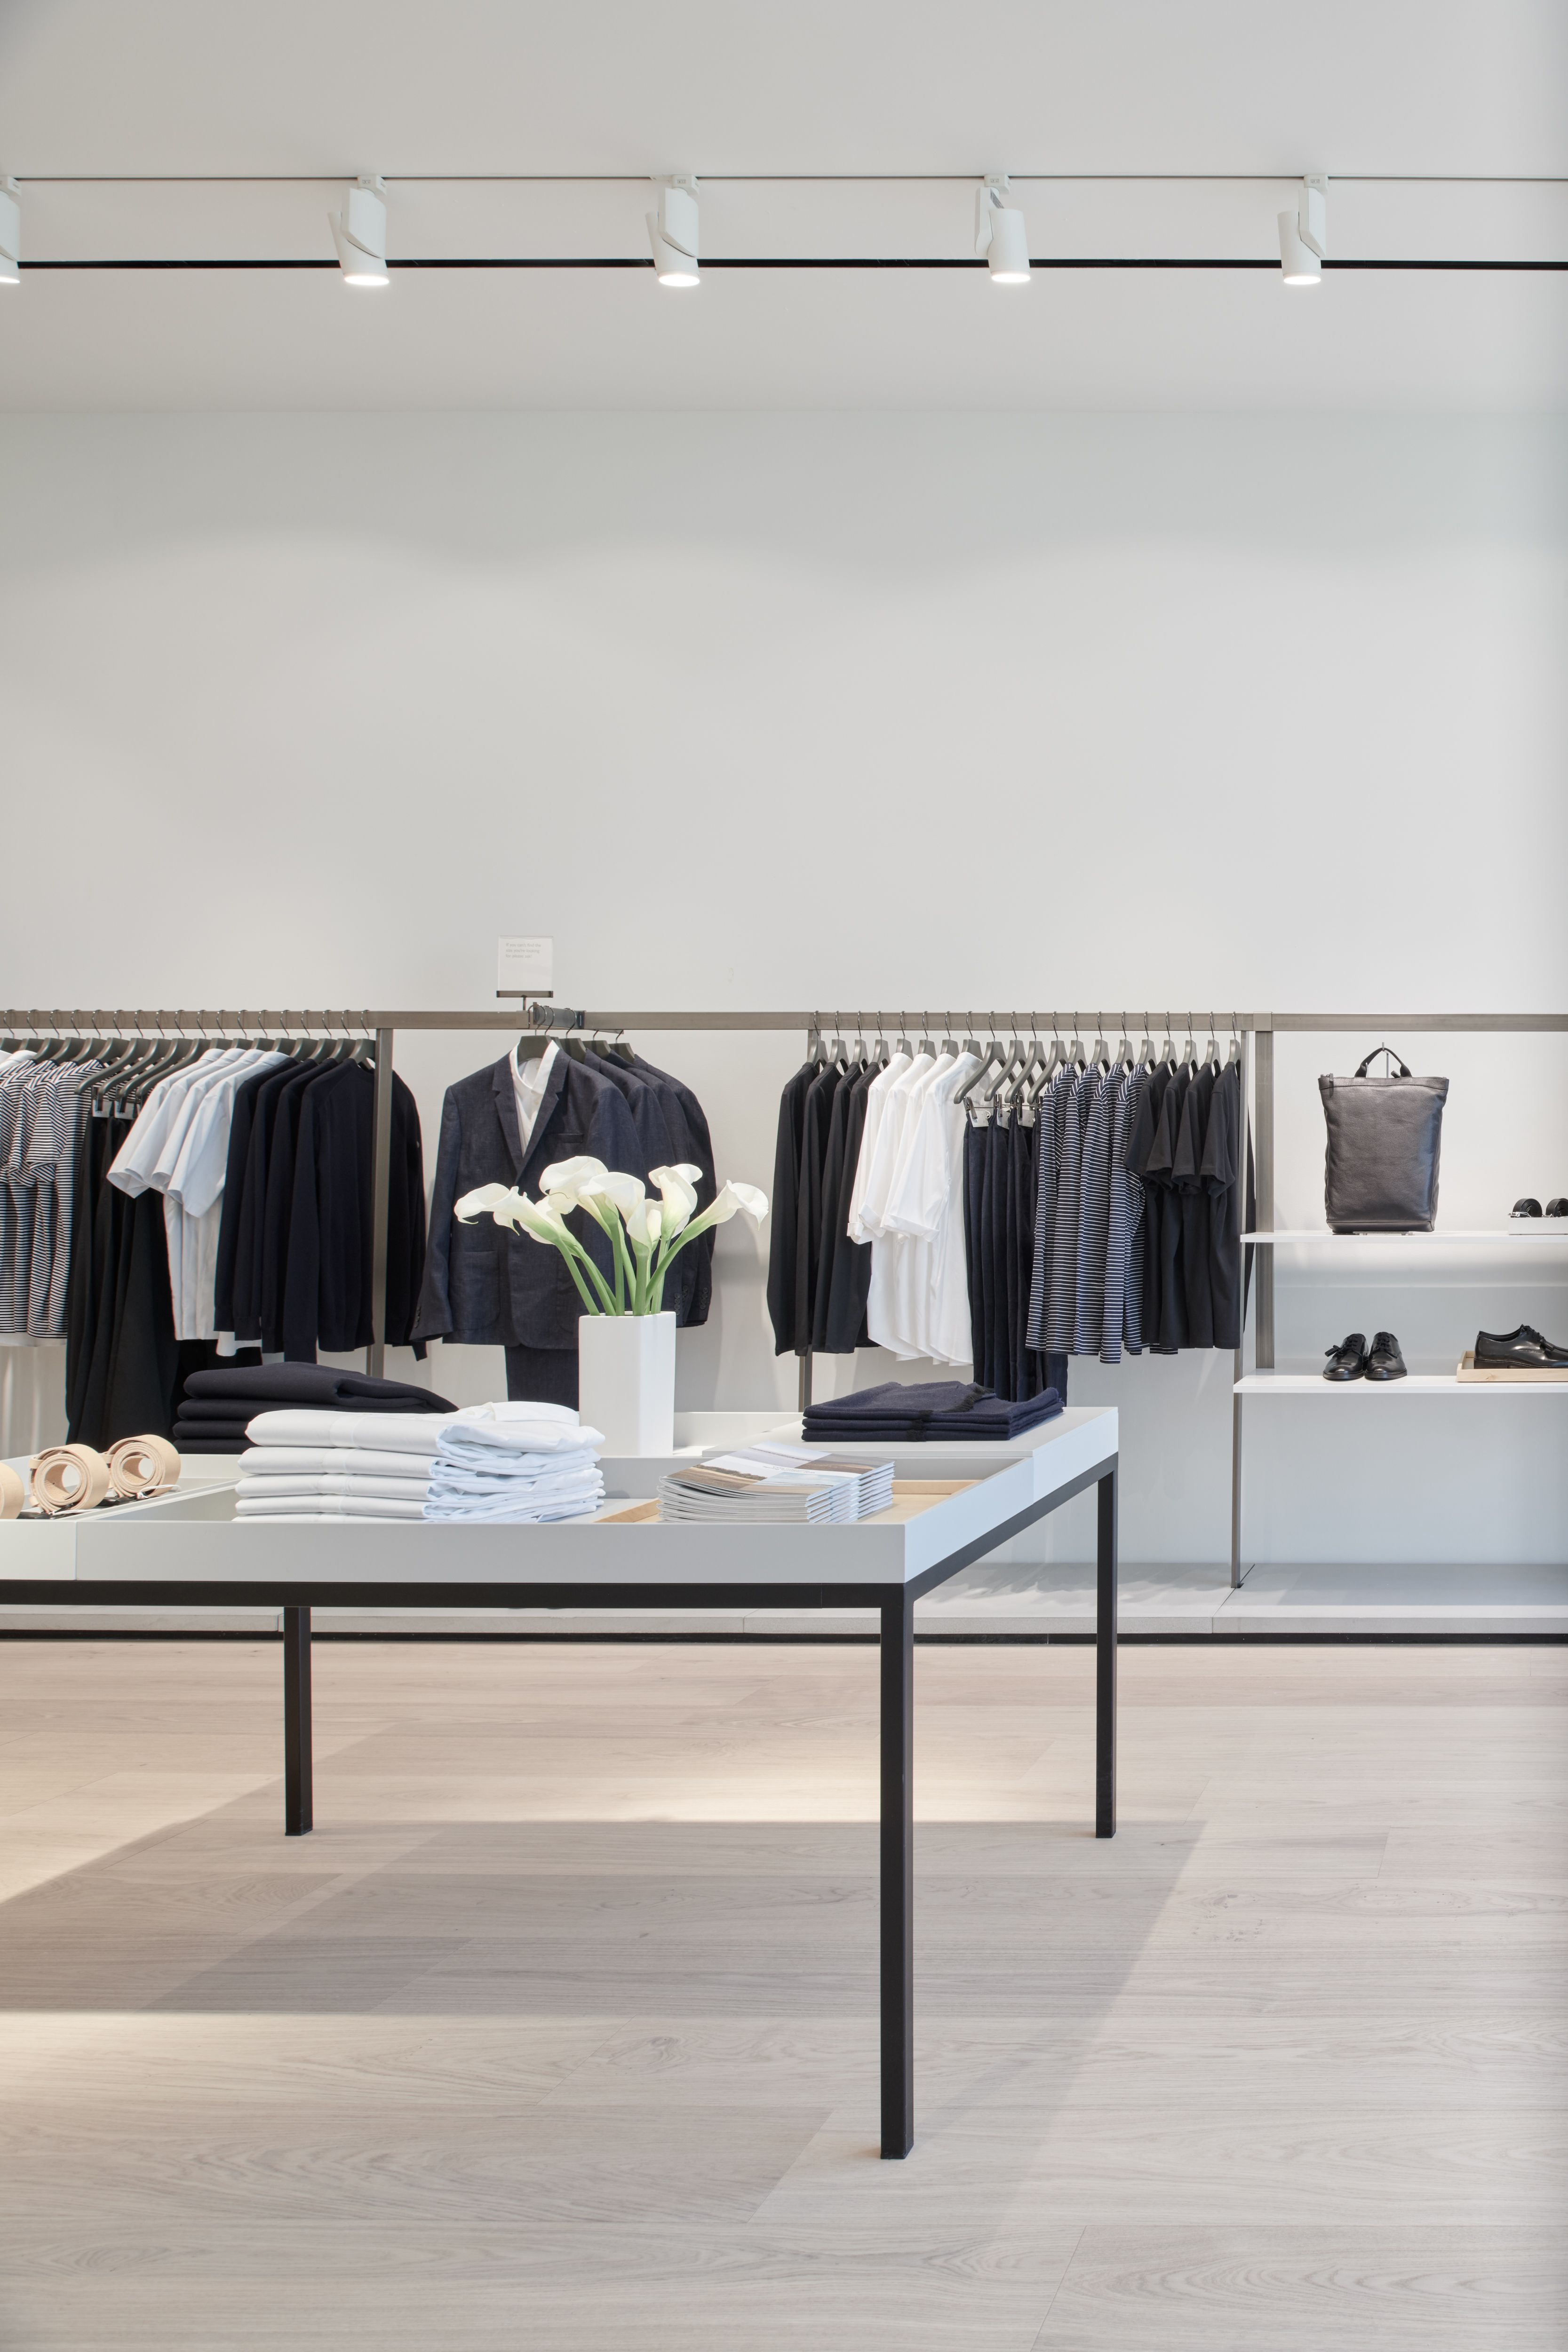 Cos stores oak street chicago retail store in 2019 - Commercial interior design chicago ...